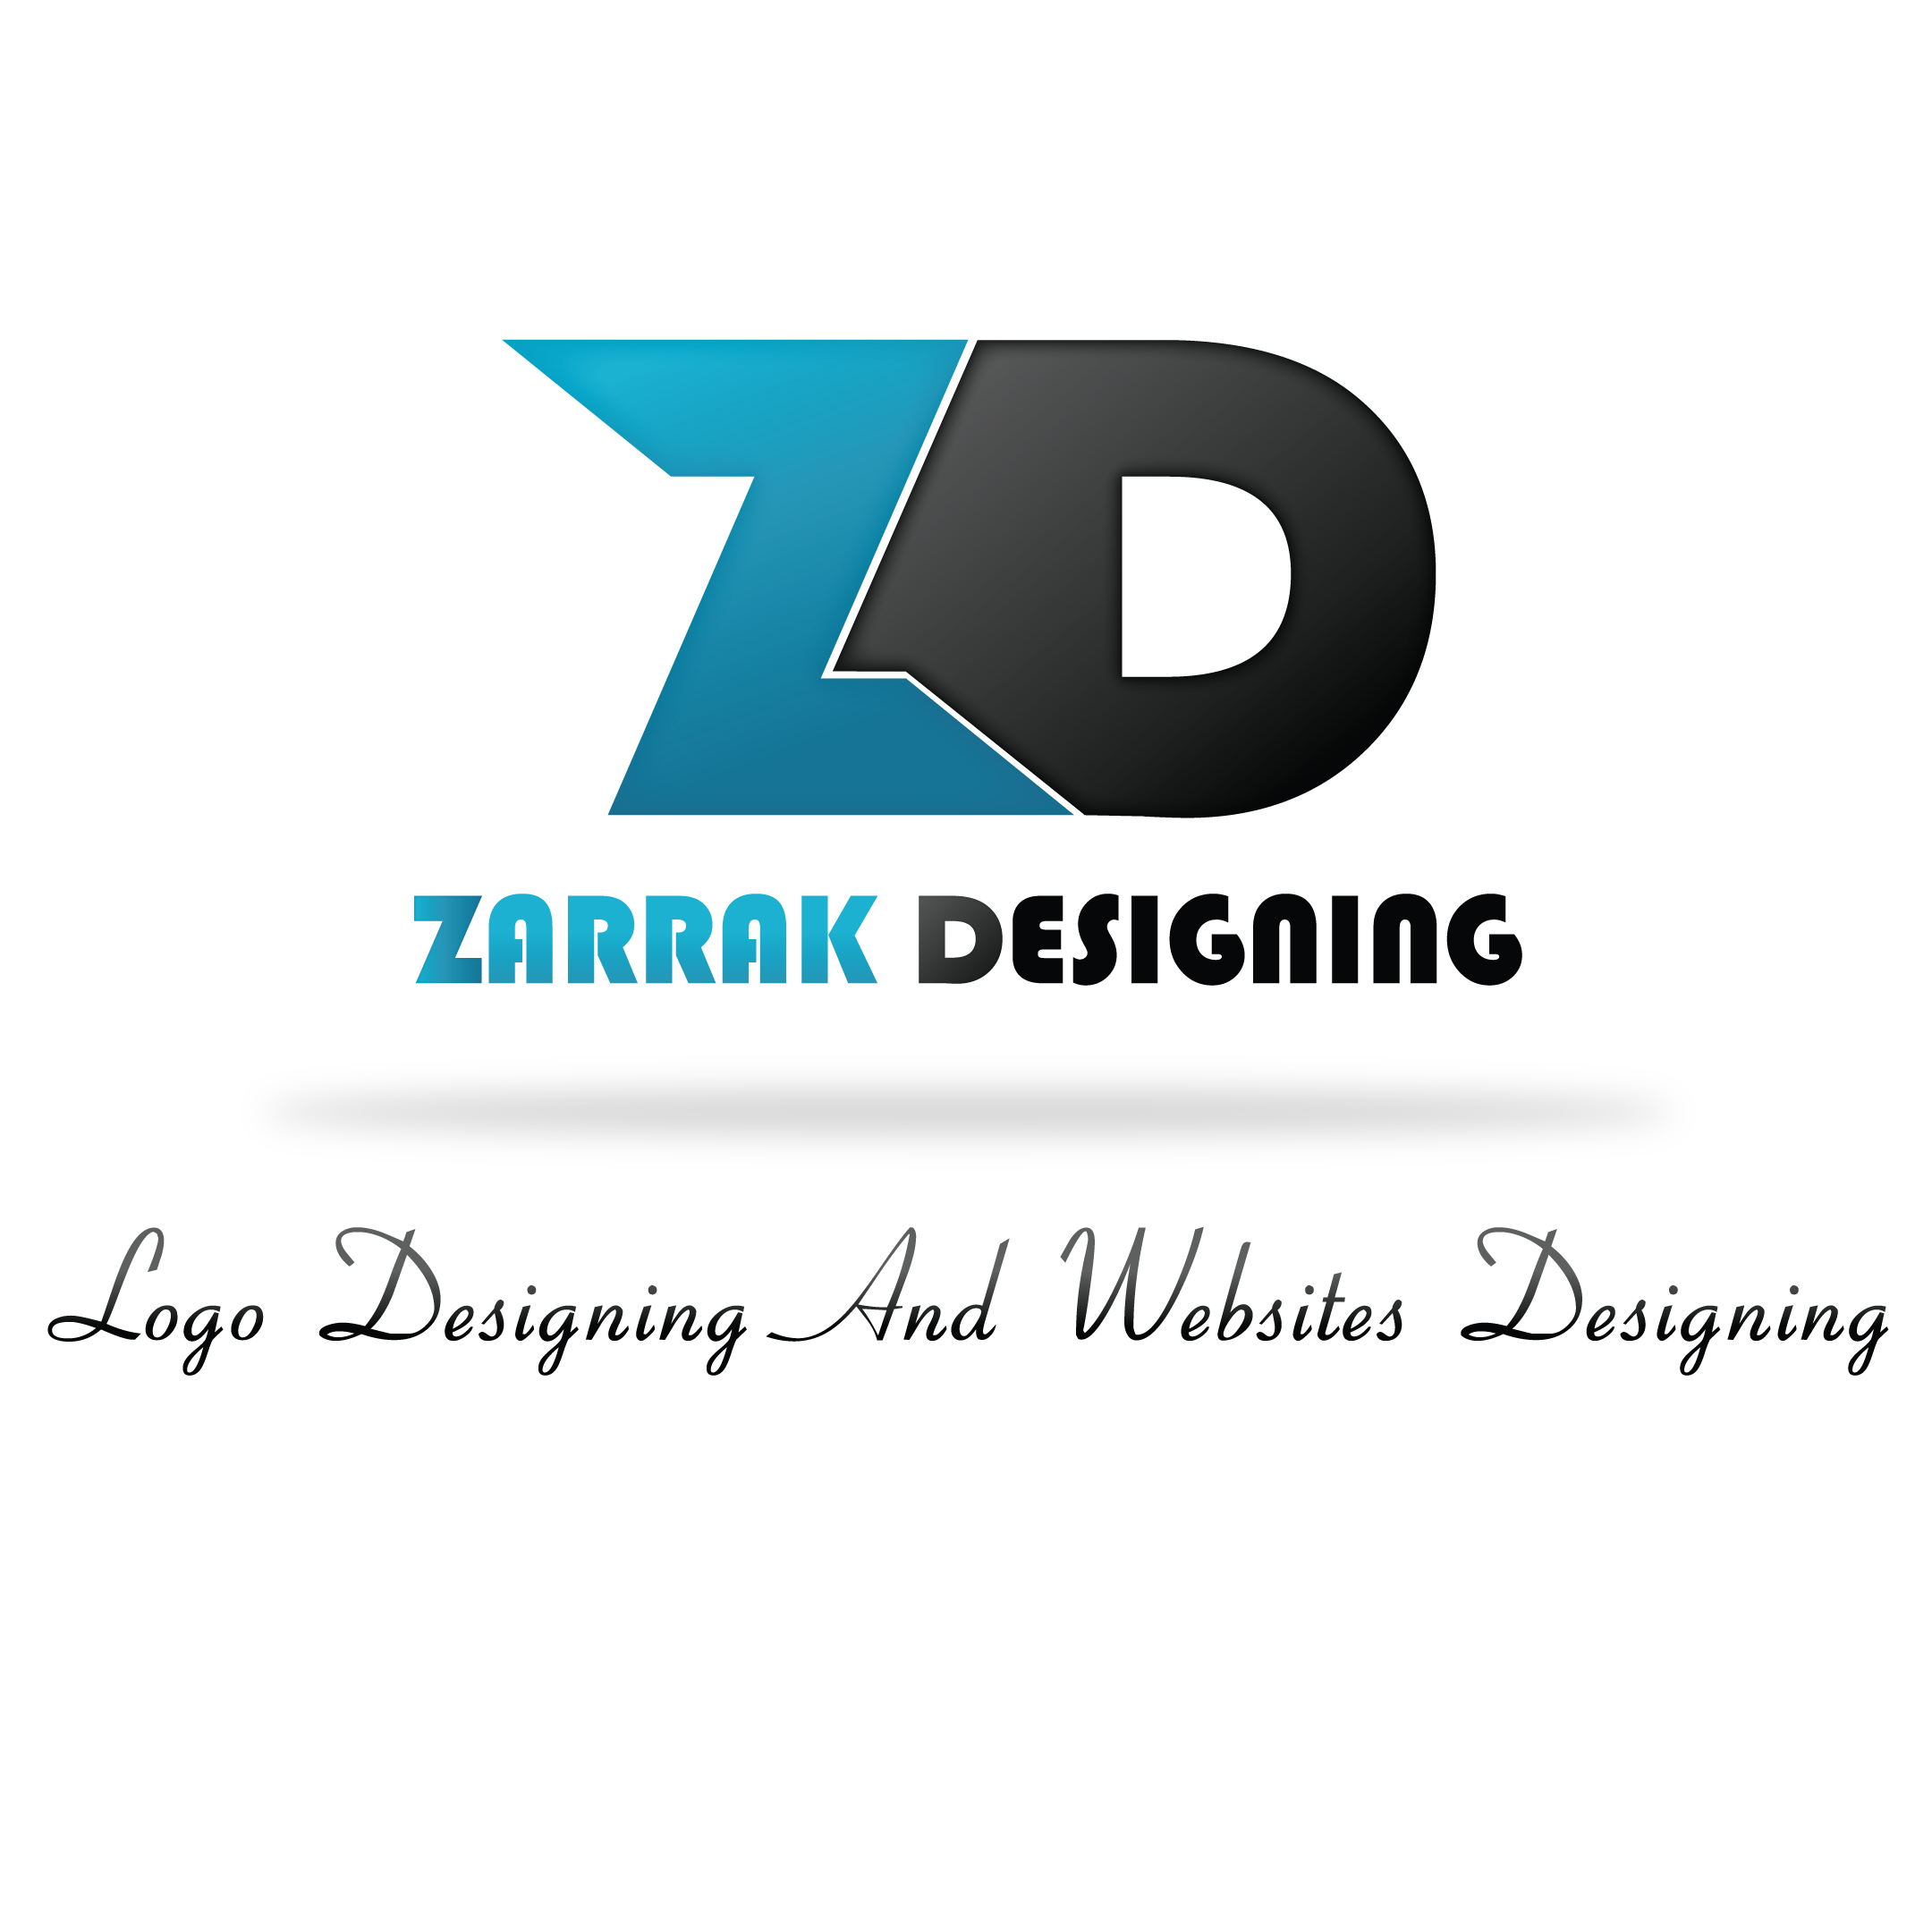 make a professional cool logo for your website or brand or